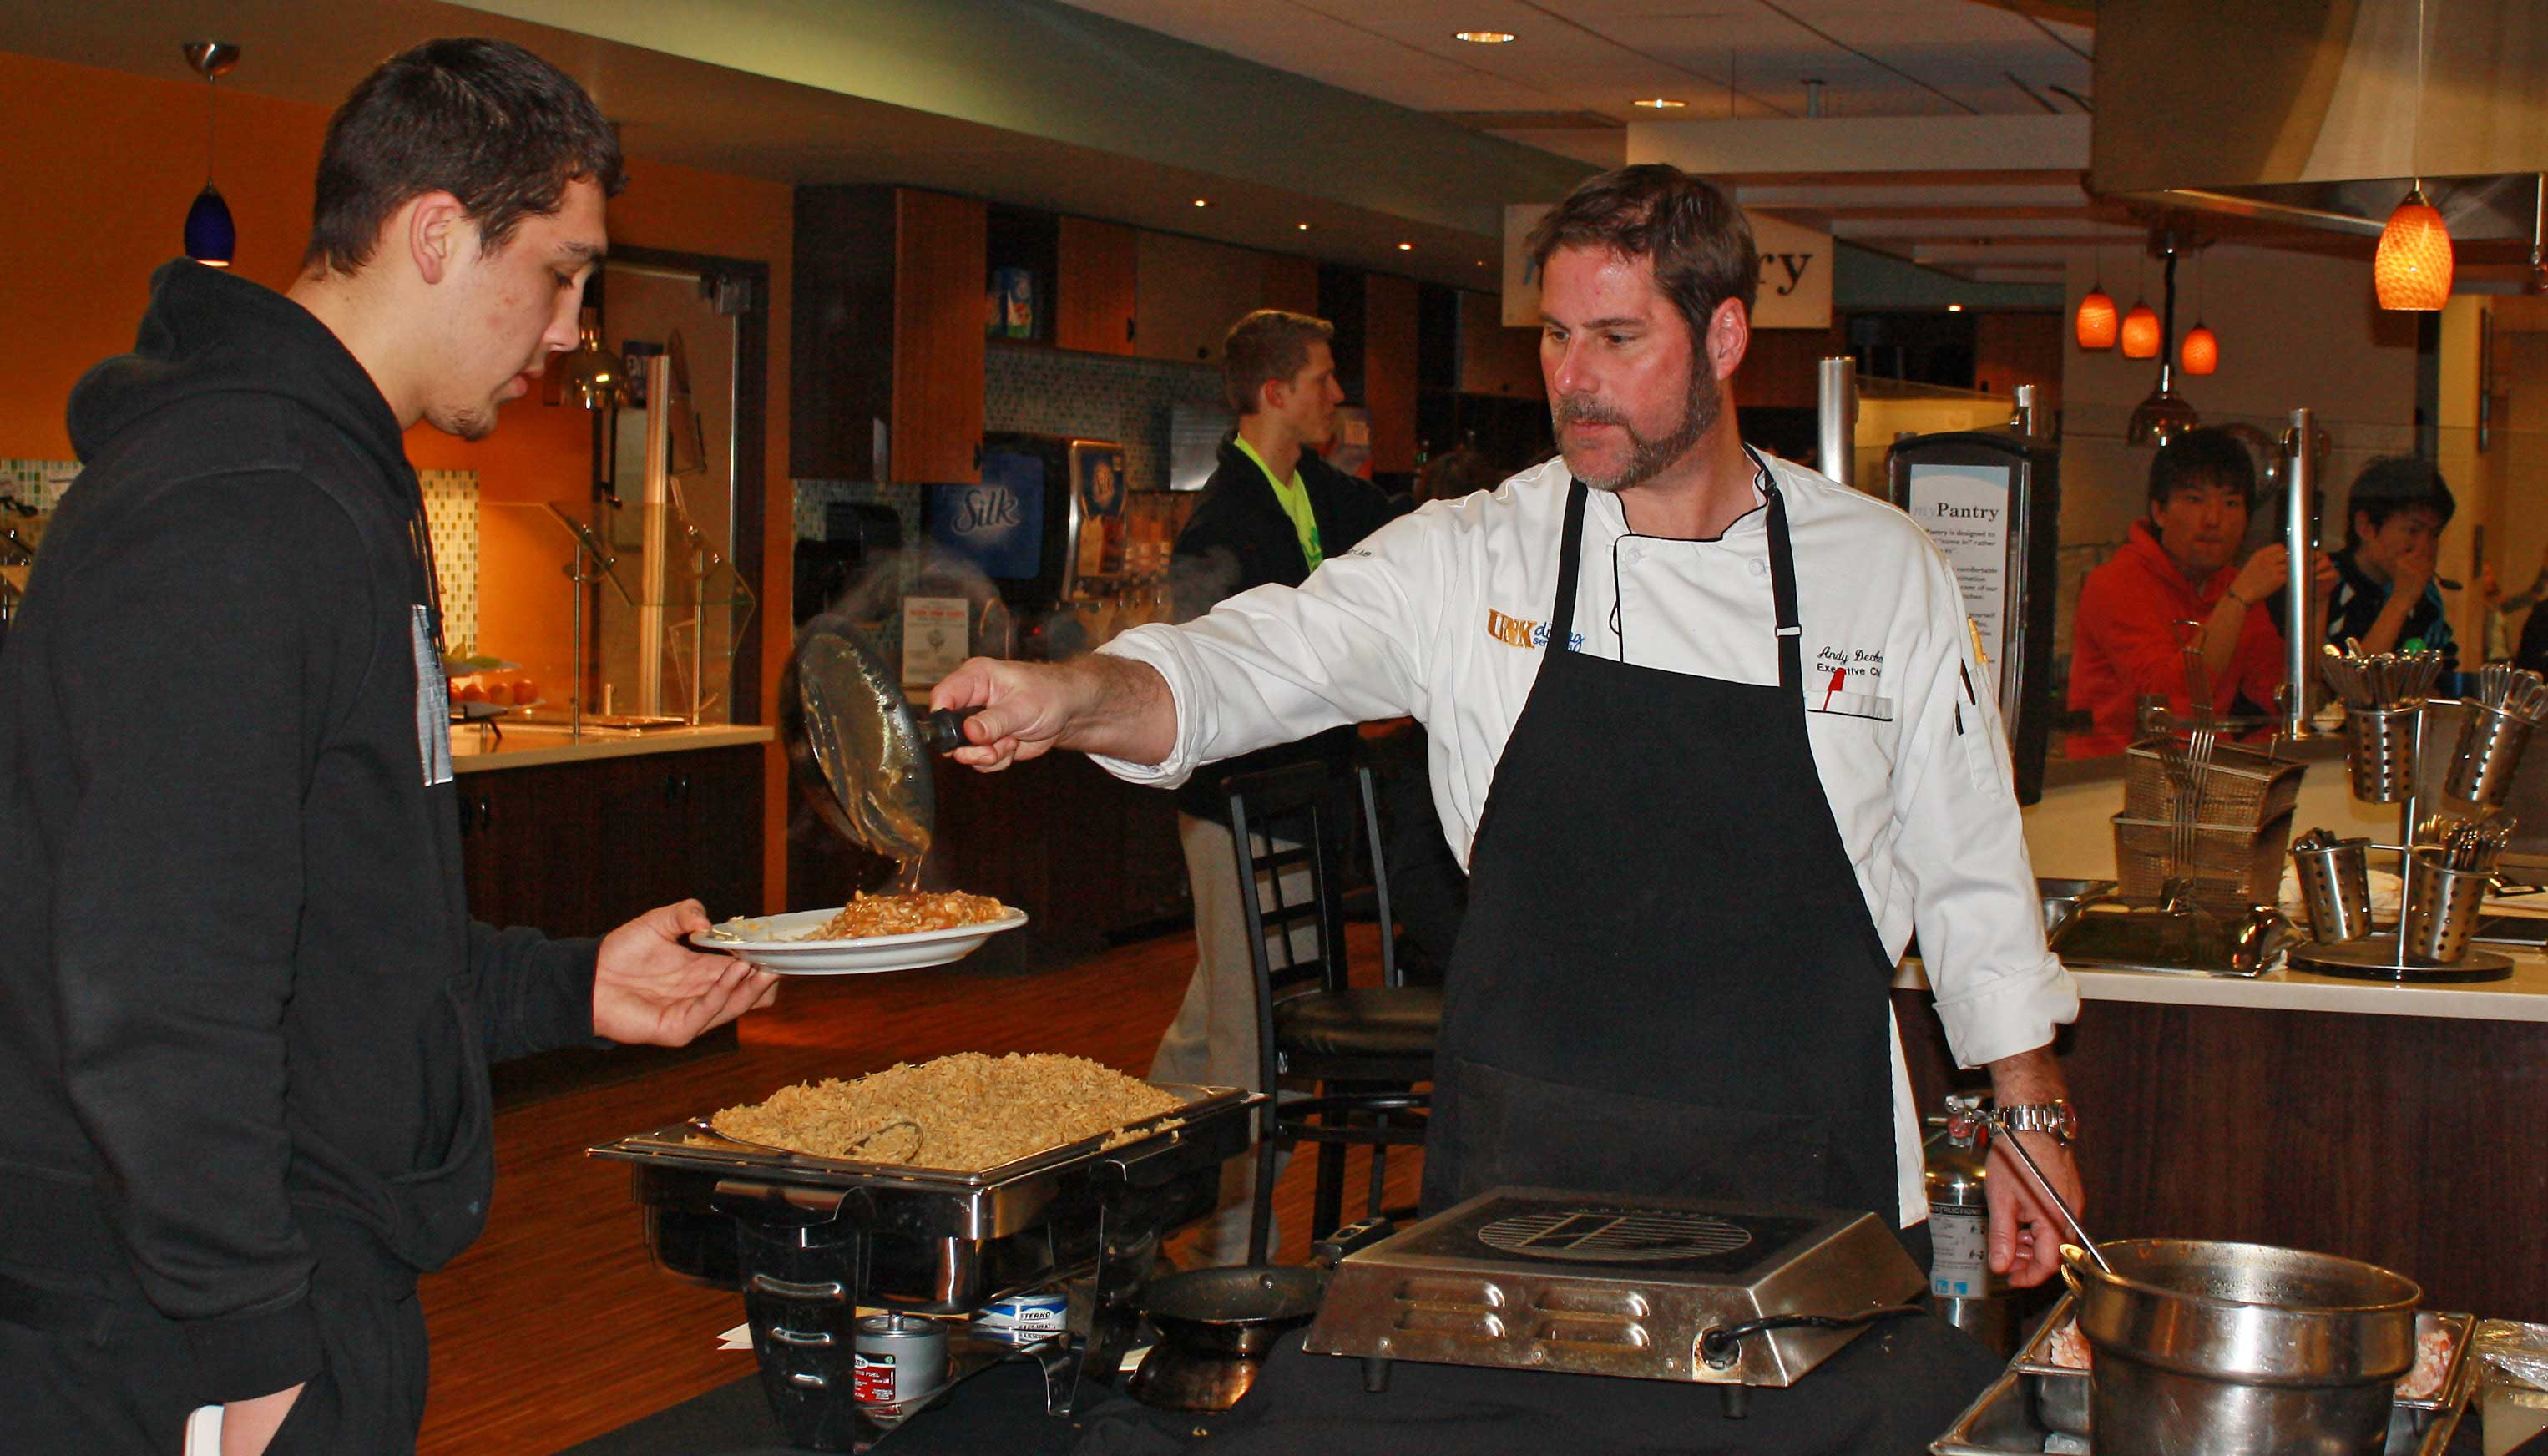 Andy Decker, executive chef of the UNK Dining Hall, shares his culinary experience with students in his Chef Andy: Cooking 101 tutorial that occurs twice each semester.